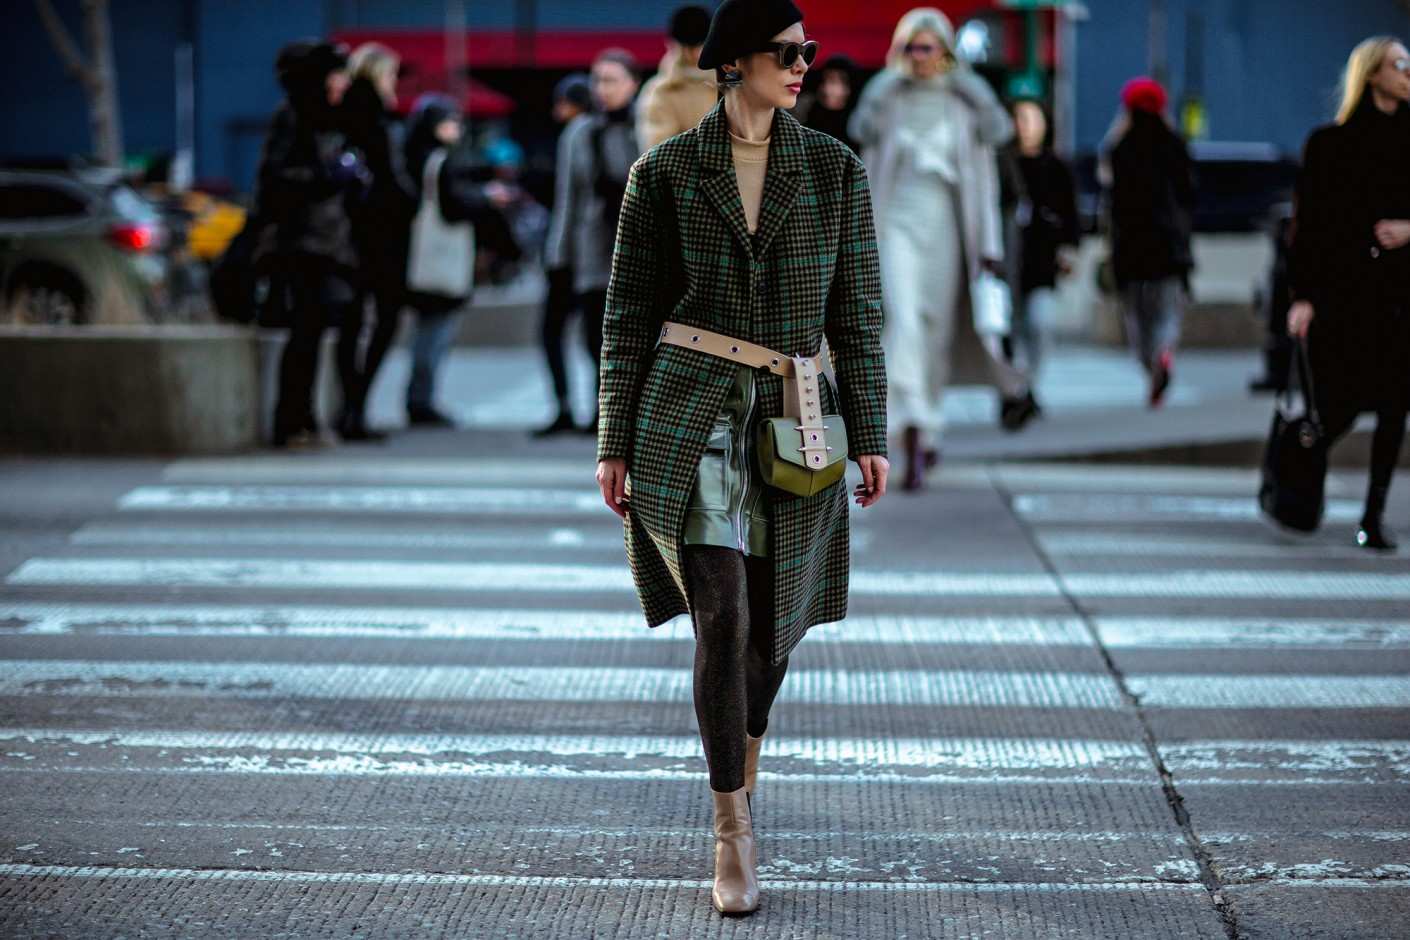 PCL_NYFW_StreetStyle_Day1-66-1410x940